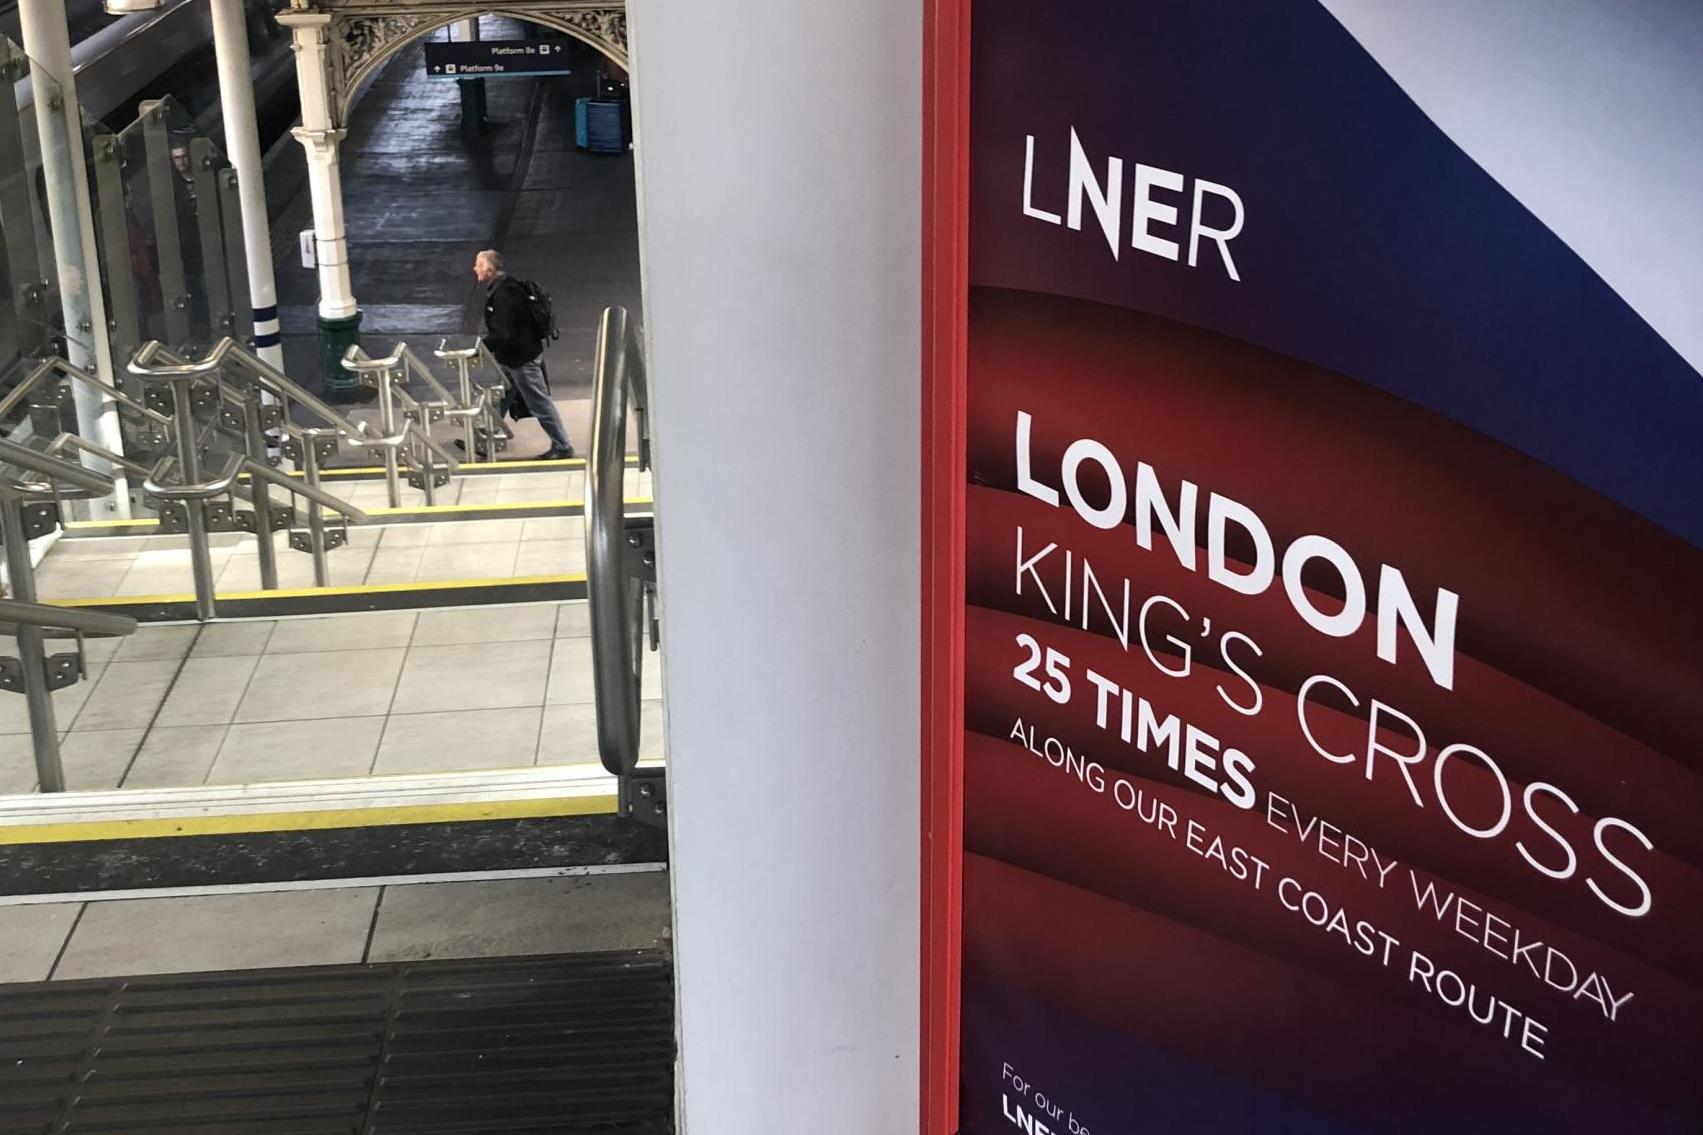 Book your train seat in advance or risk being turned away, says LNER